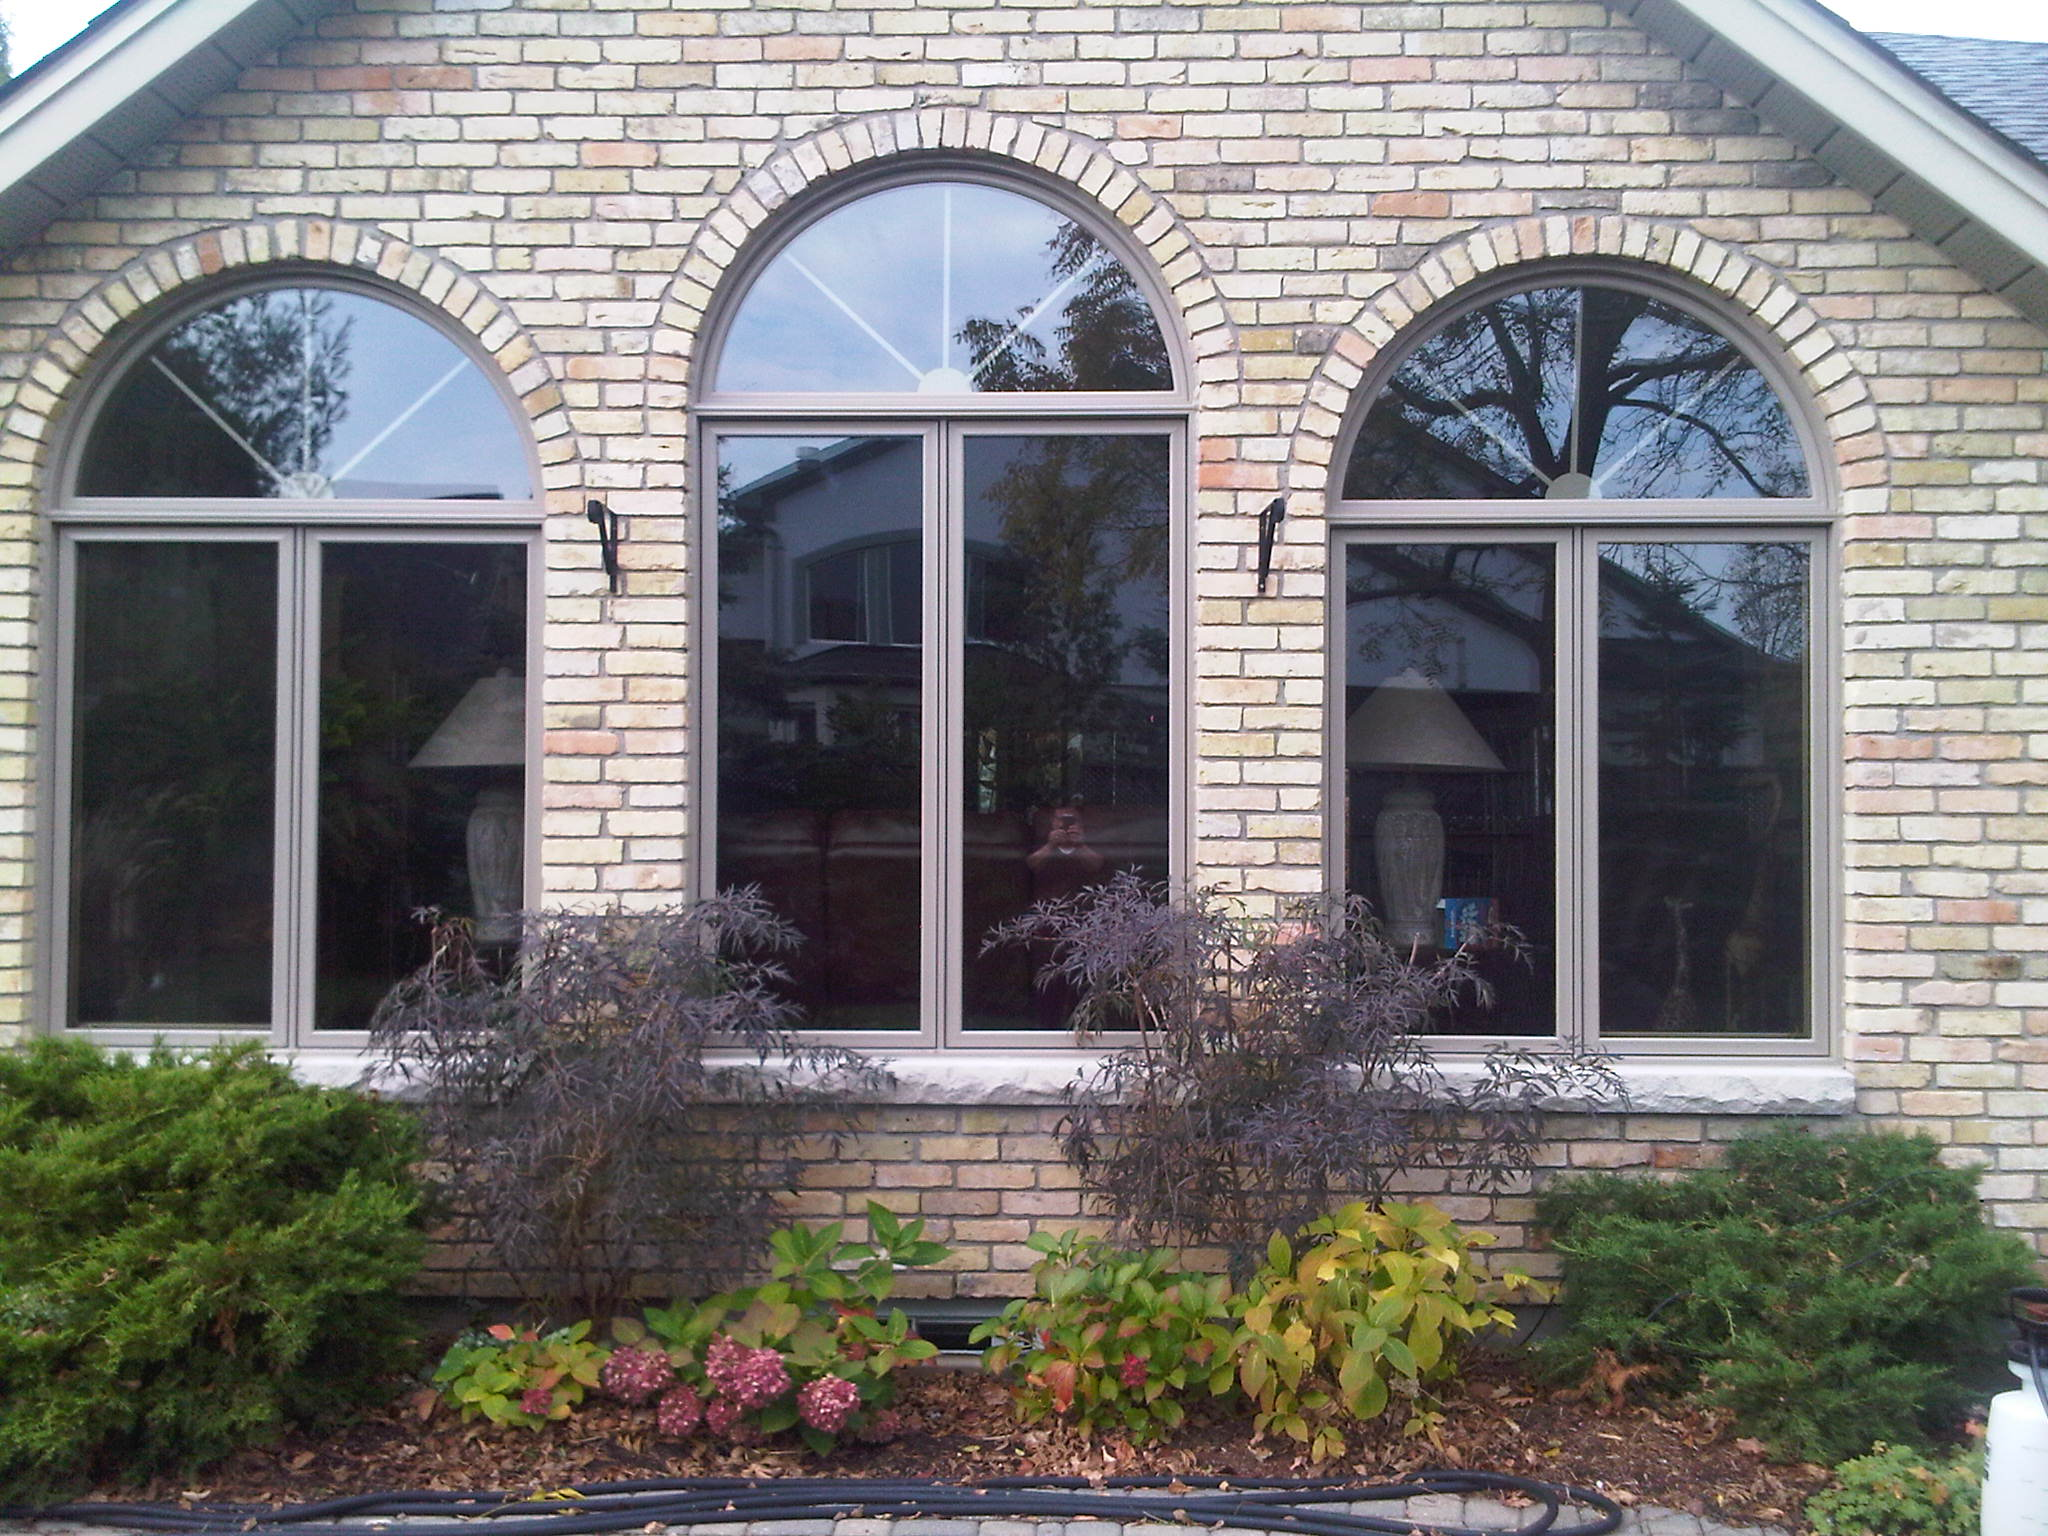 Double casements with curved windows above